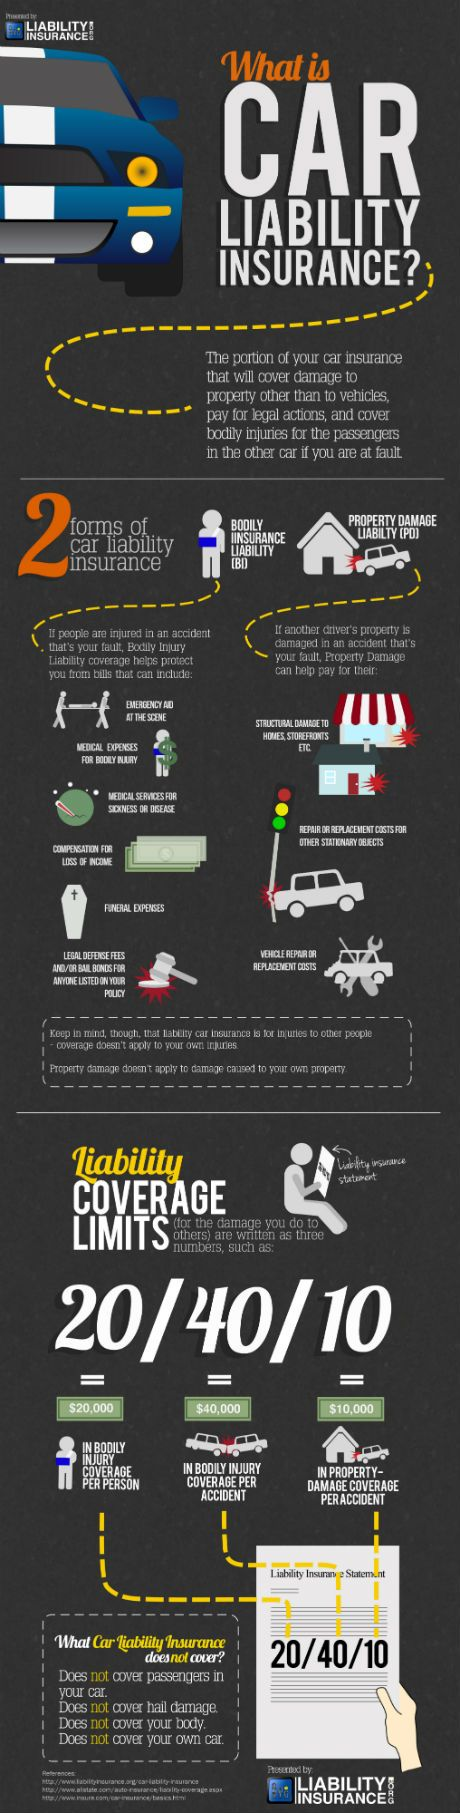 car liability insurance infographic